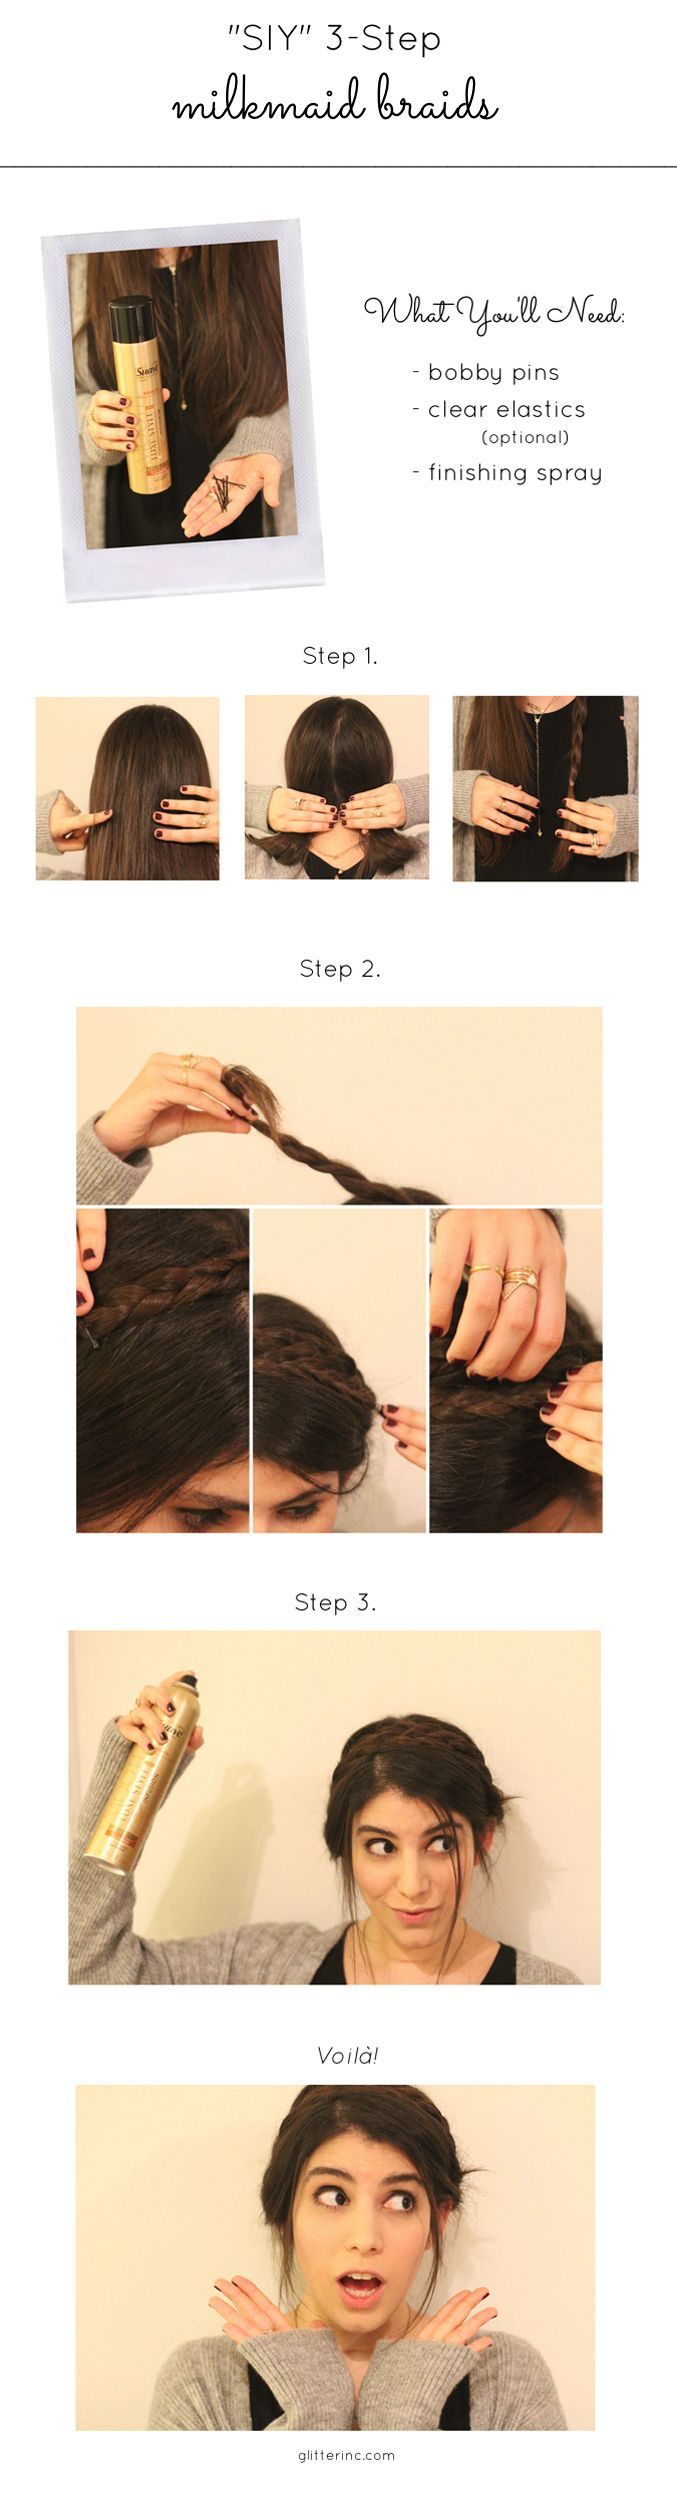 How to: 3-Step Double Braids (a.k.a., Milkmaid Braids) #Updo @SuaveBeauty #StyleItYourself